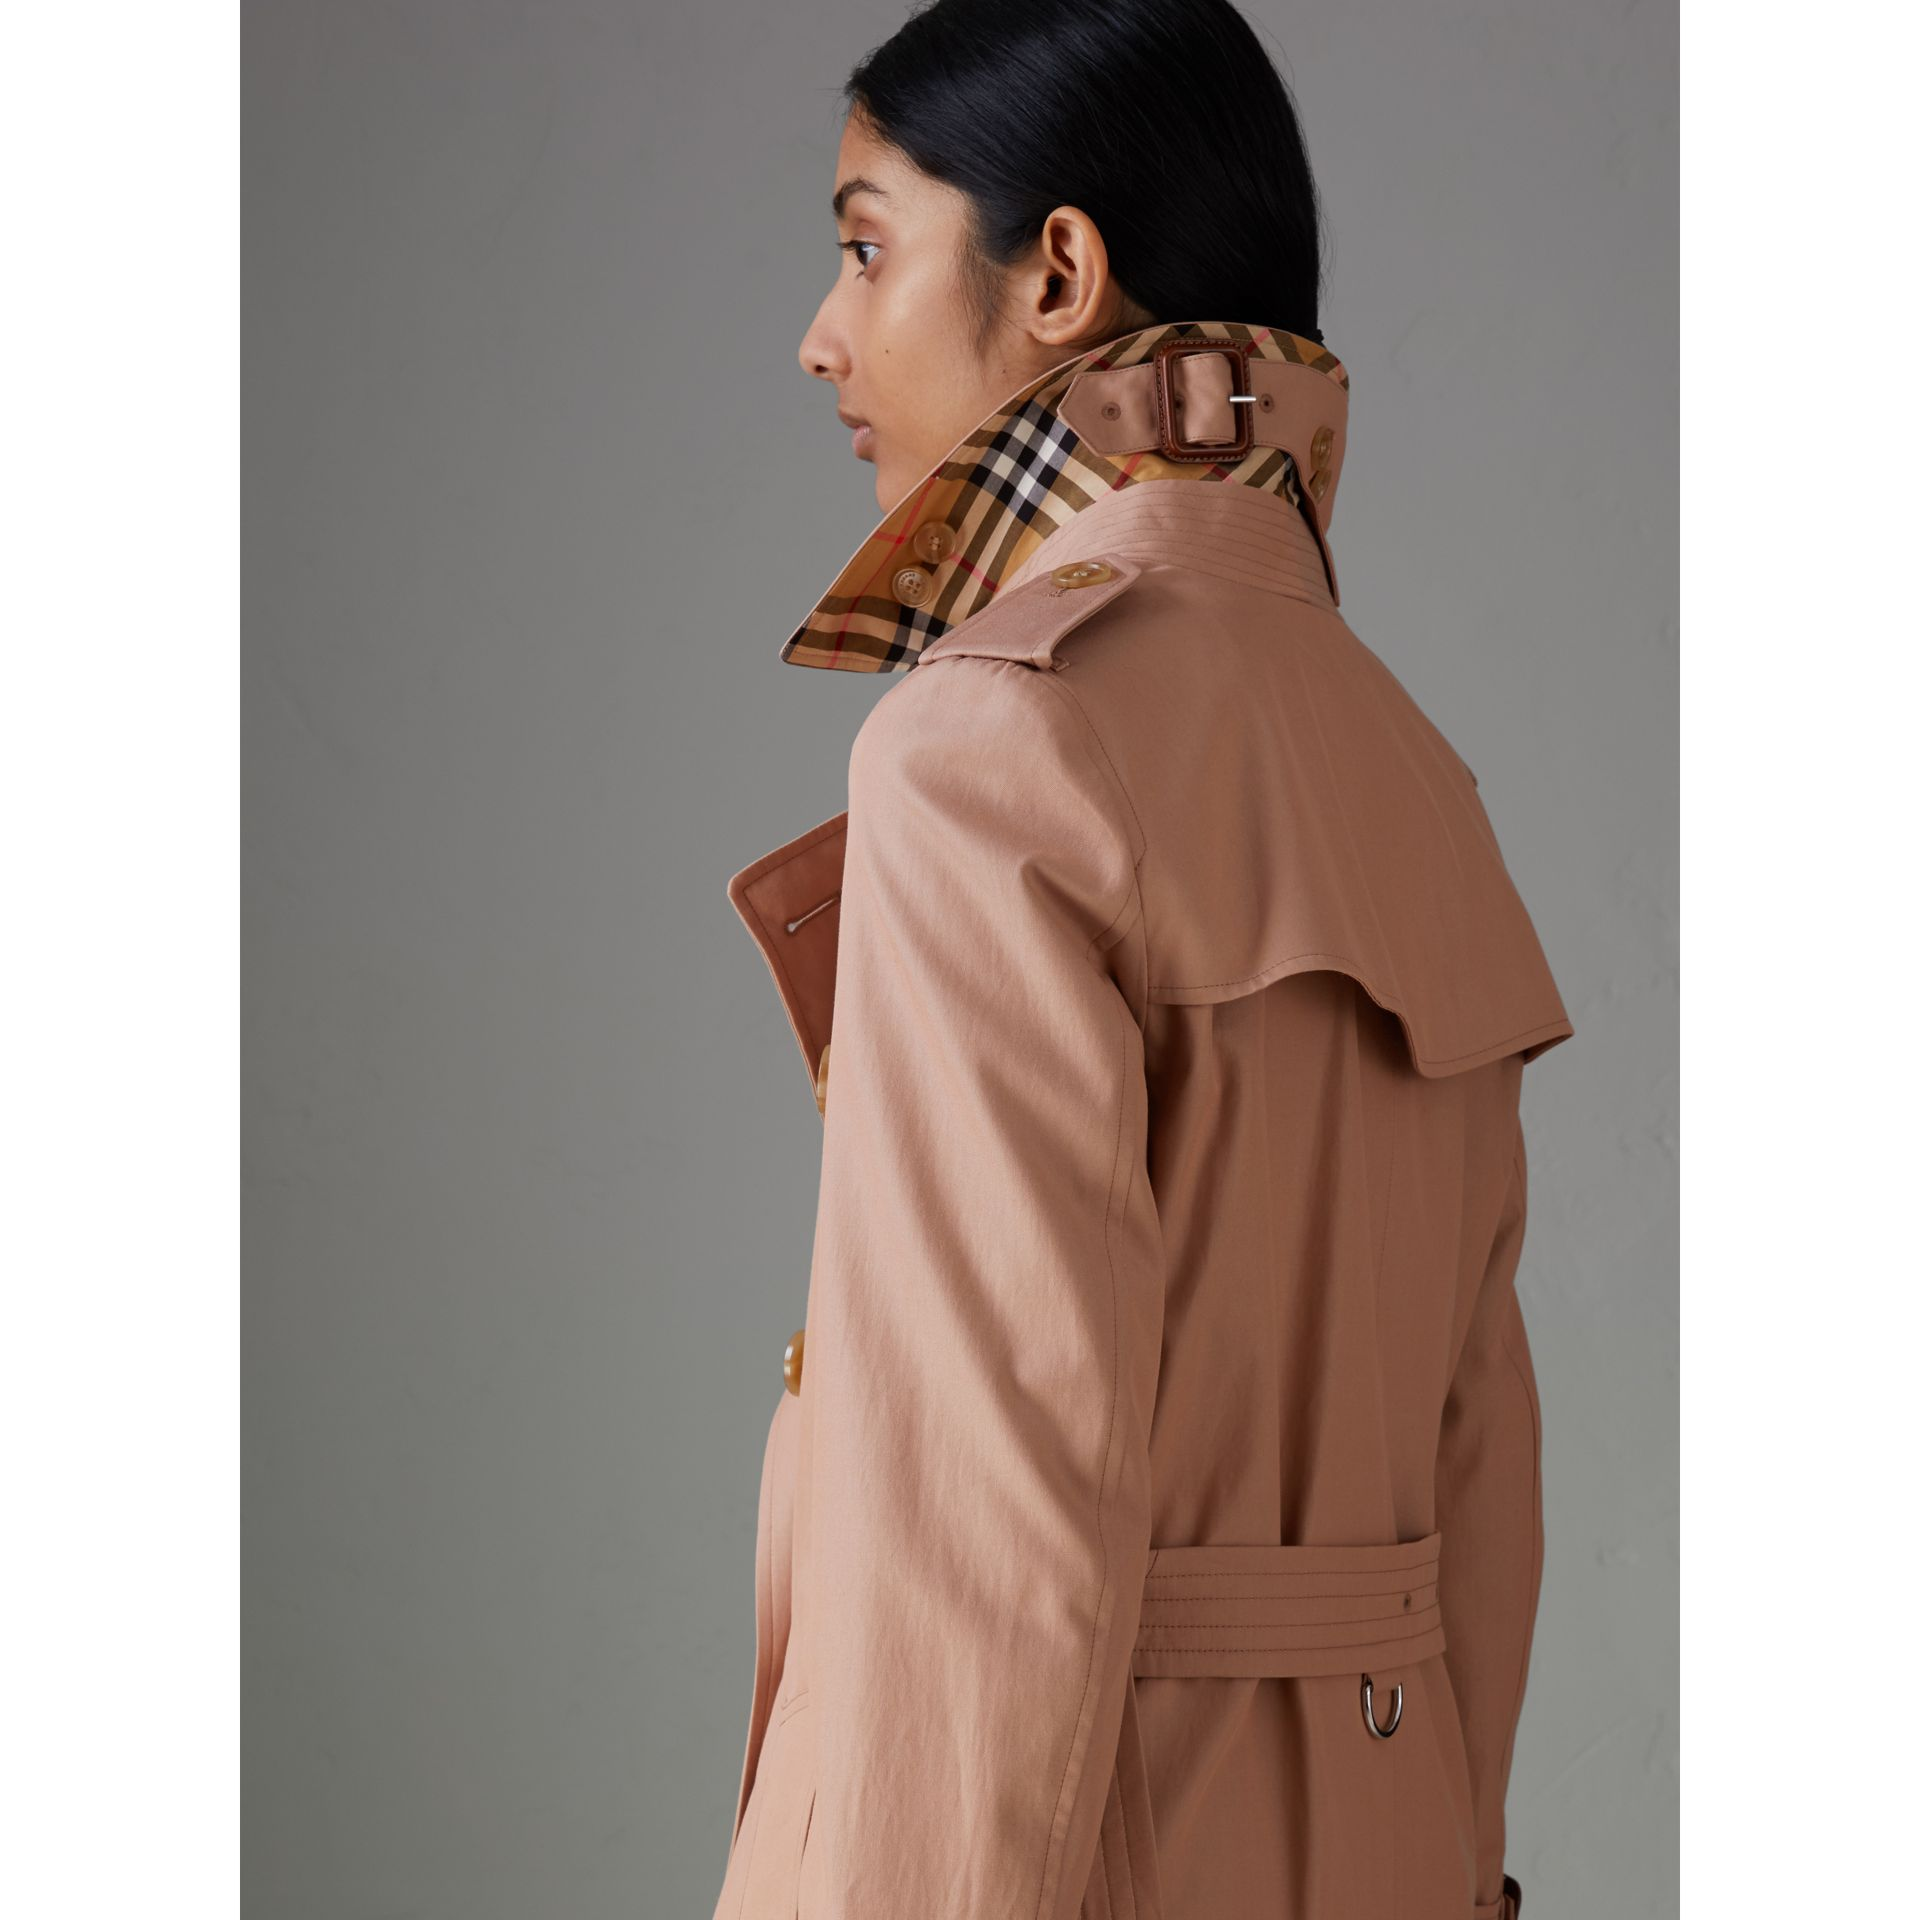 Tropical Gabardine Trench Coat in Pink Apricot - Women | Burberry Singapore - gallery image 4